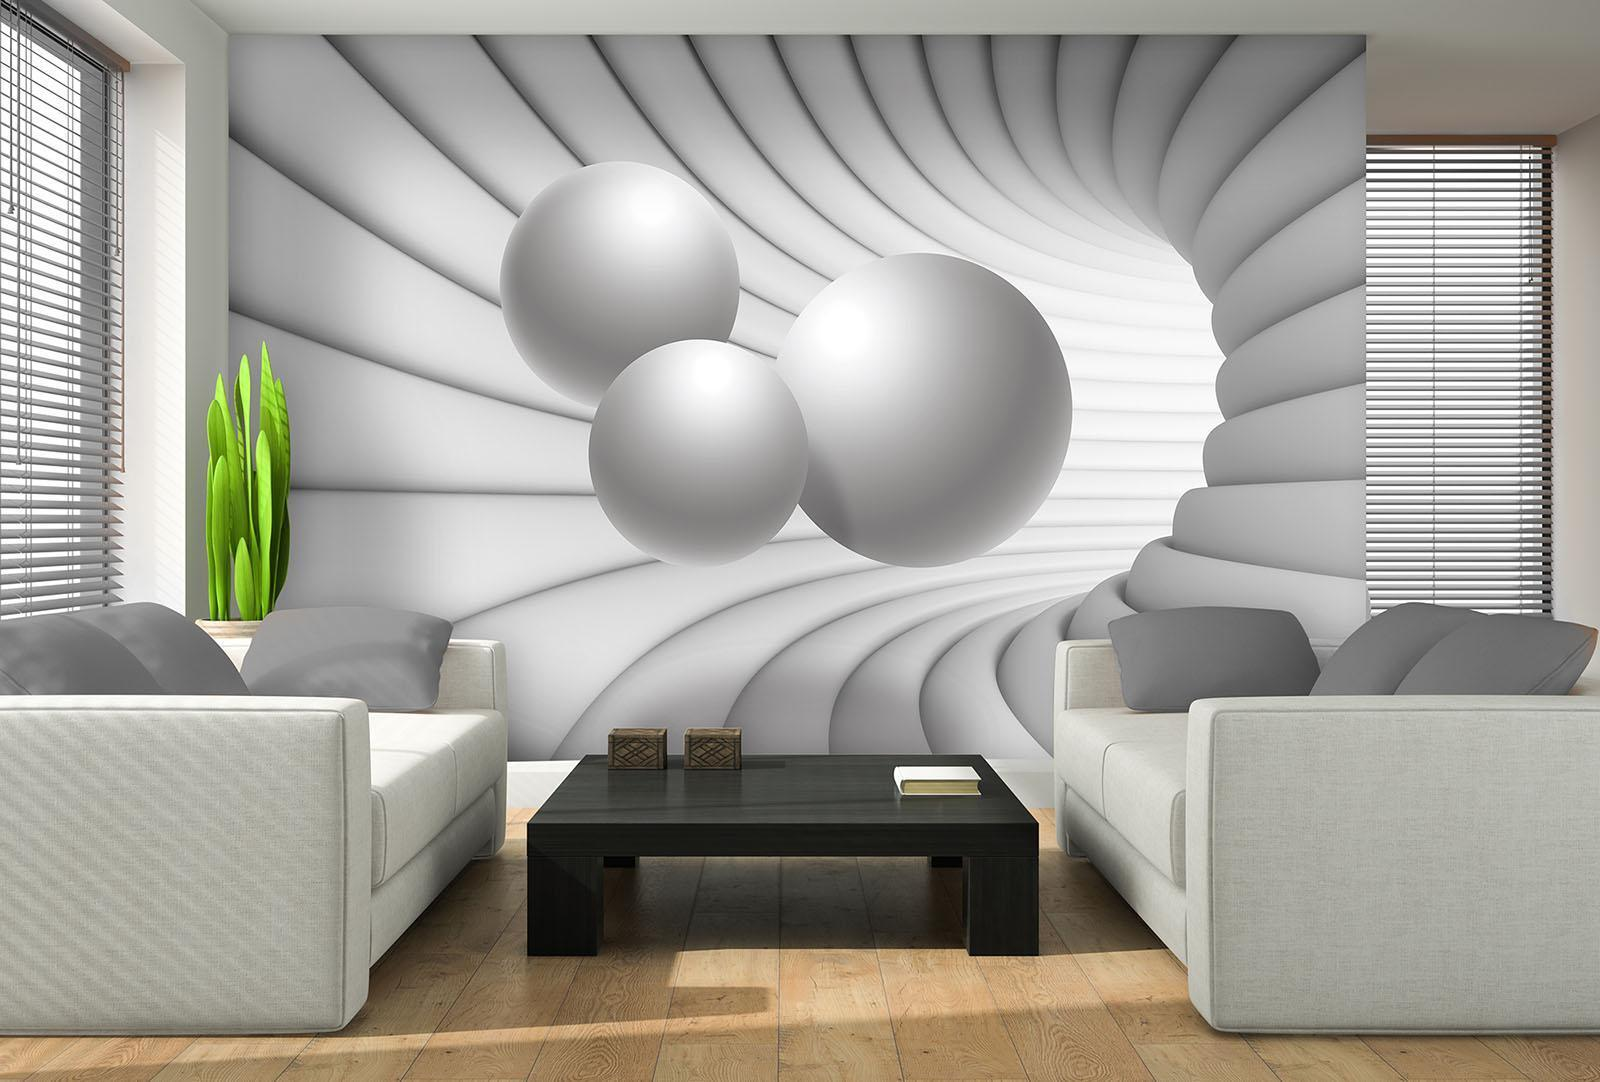 Photo Wallpaper Mural  10141_P 3D Tunnel with Weiß Spheres Abstract art Abstrac